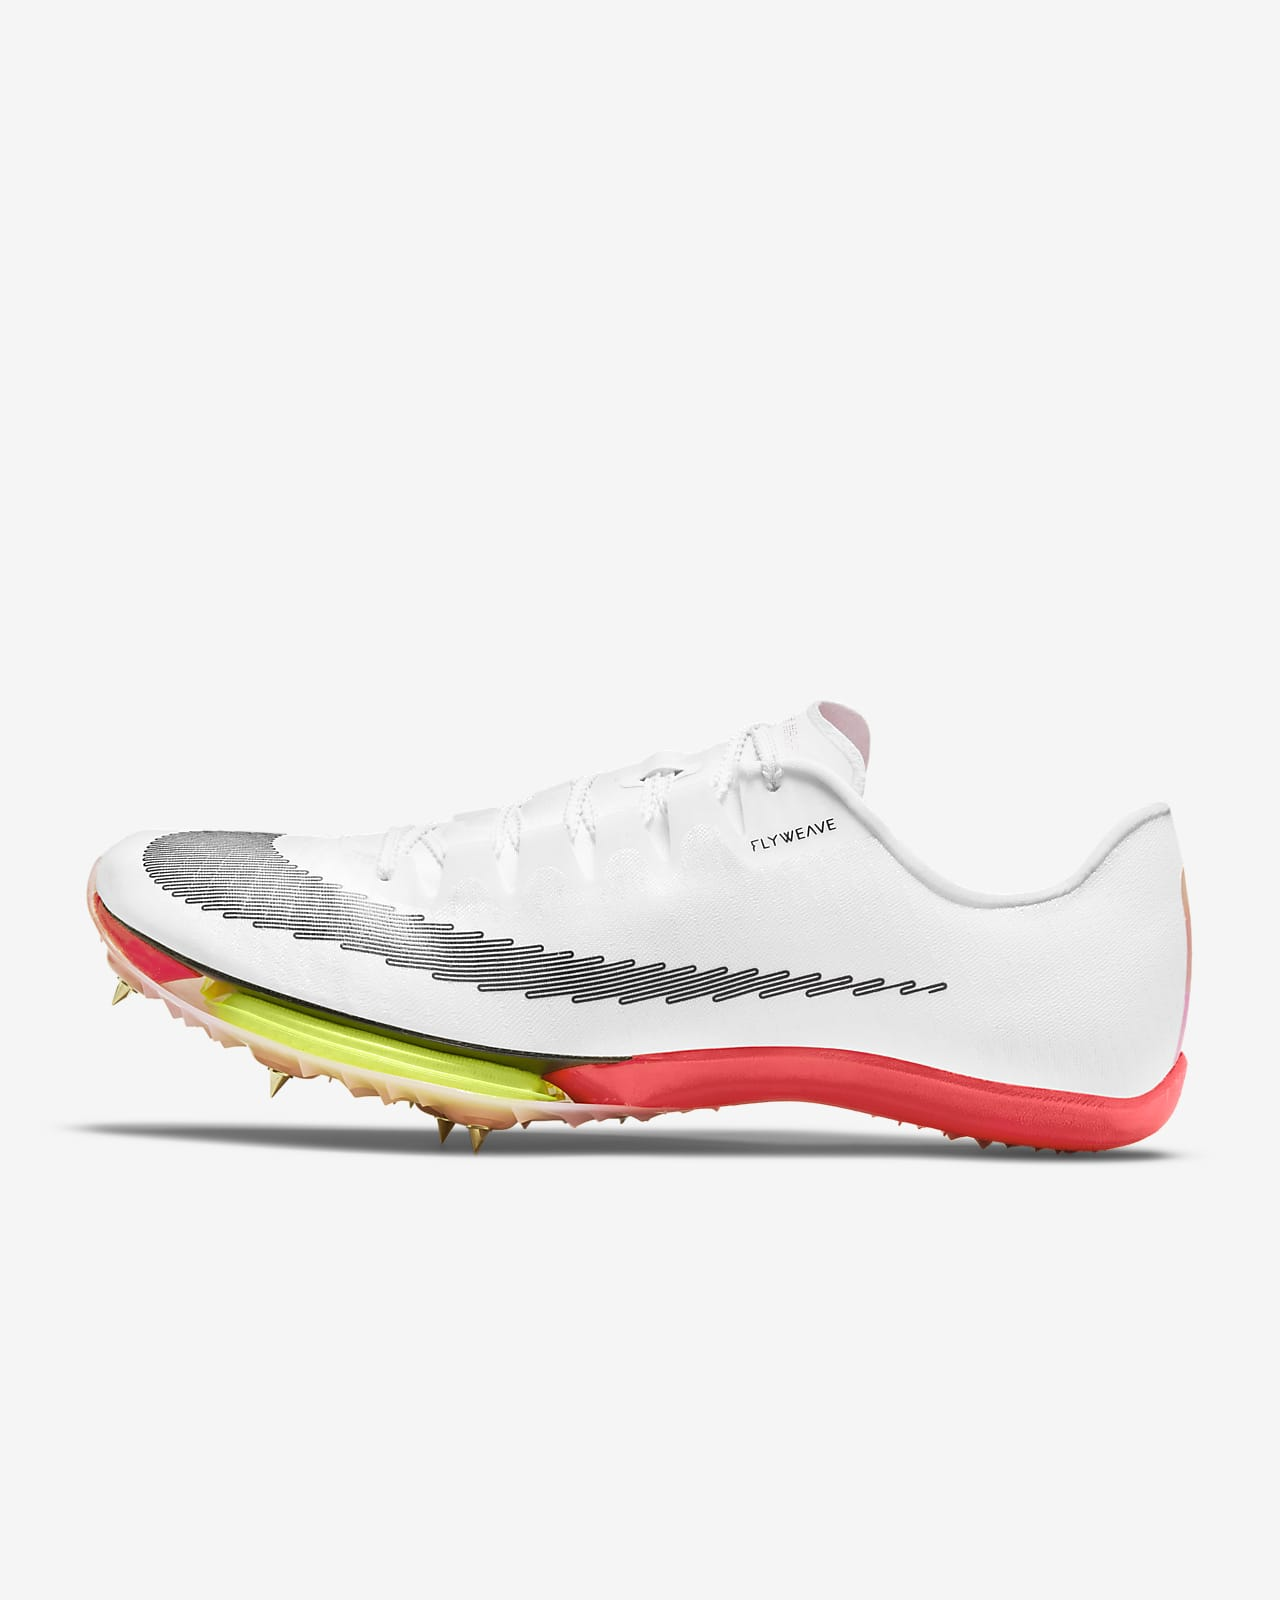 Nike Air Zoom Maxfly Track & Field Sprinting Spikes